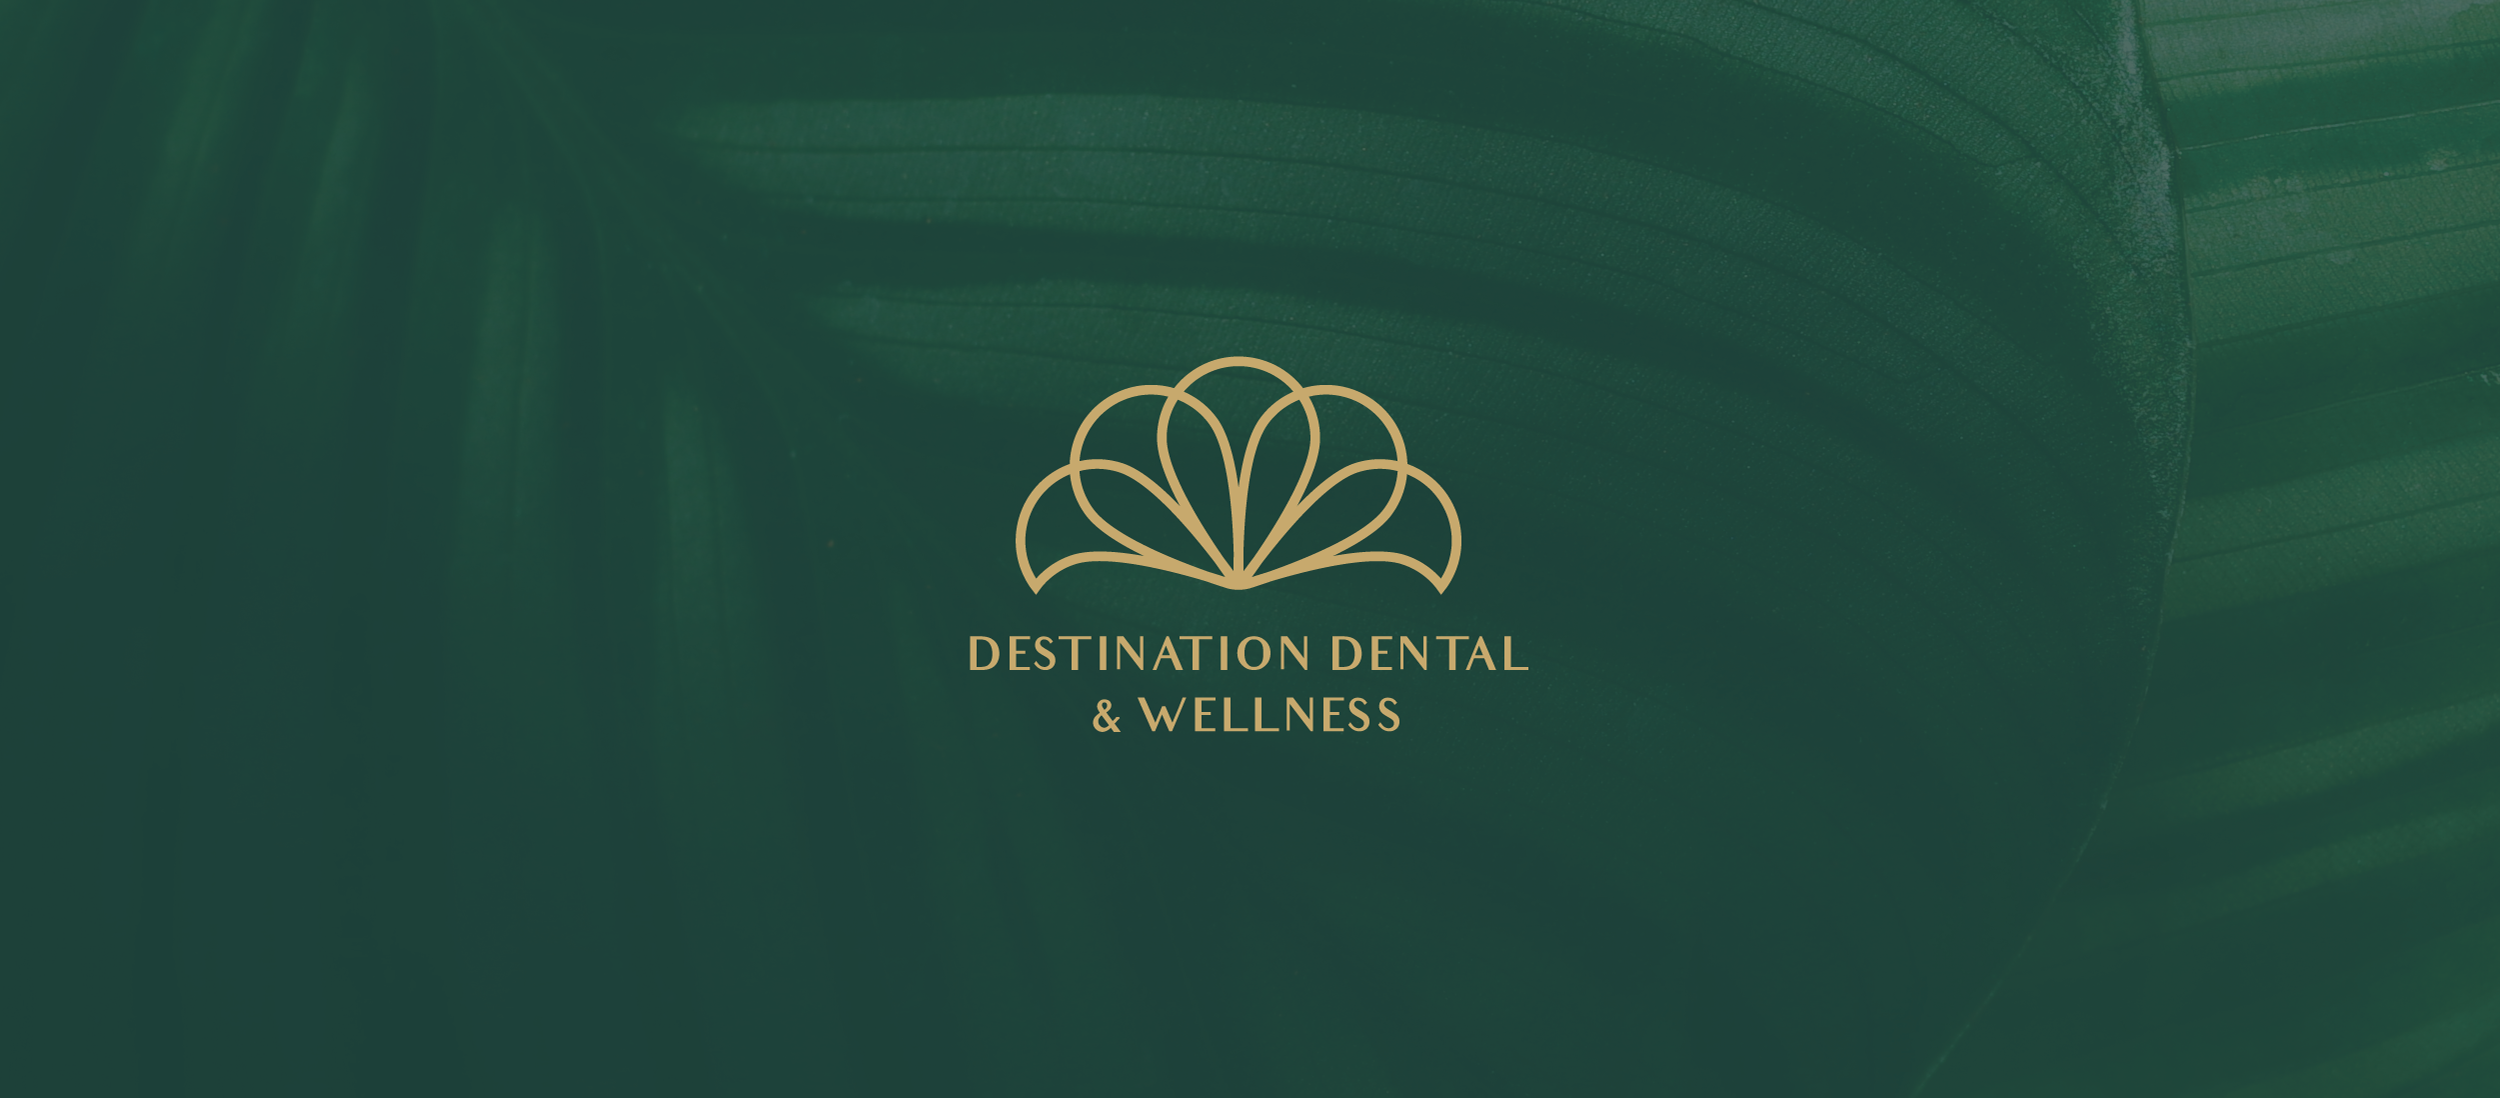 Destination Dental & Wellness Logo with a green leaf background.